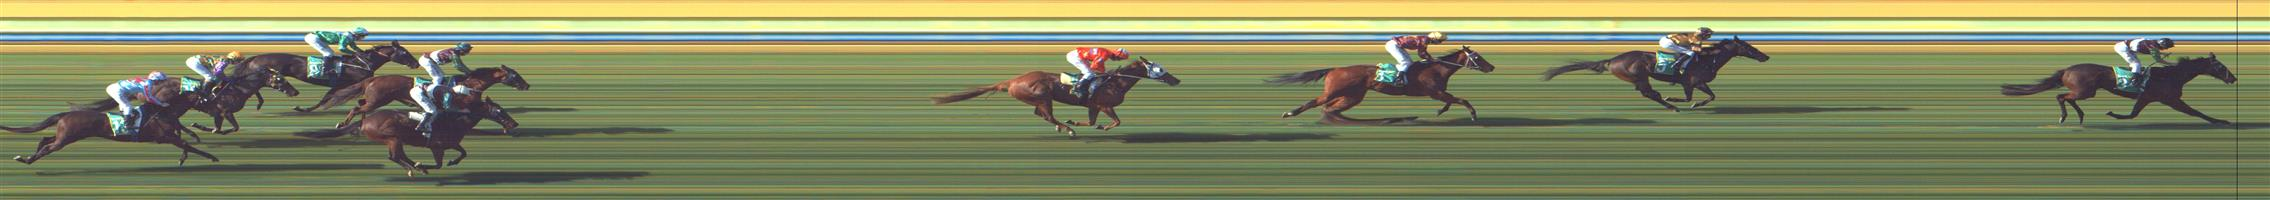 BENDIGO Race 4 No. 13 Fields Of Heather  Result : Unplaced at SP $6.50. After being three wide midfield the trip, on the home turn moved up to the leaders but dropped out soon after to finish towards the tail of the field. Outcome -0.91 Units.